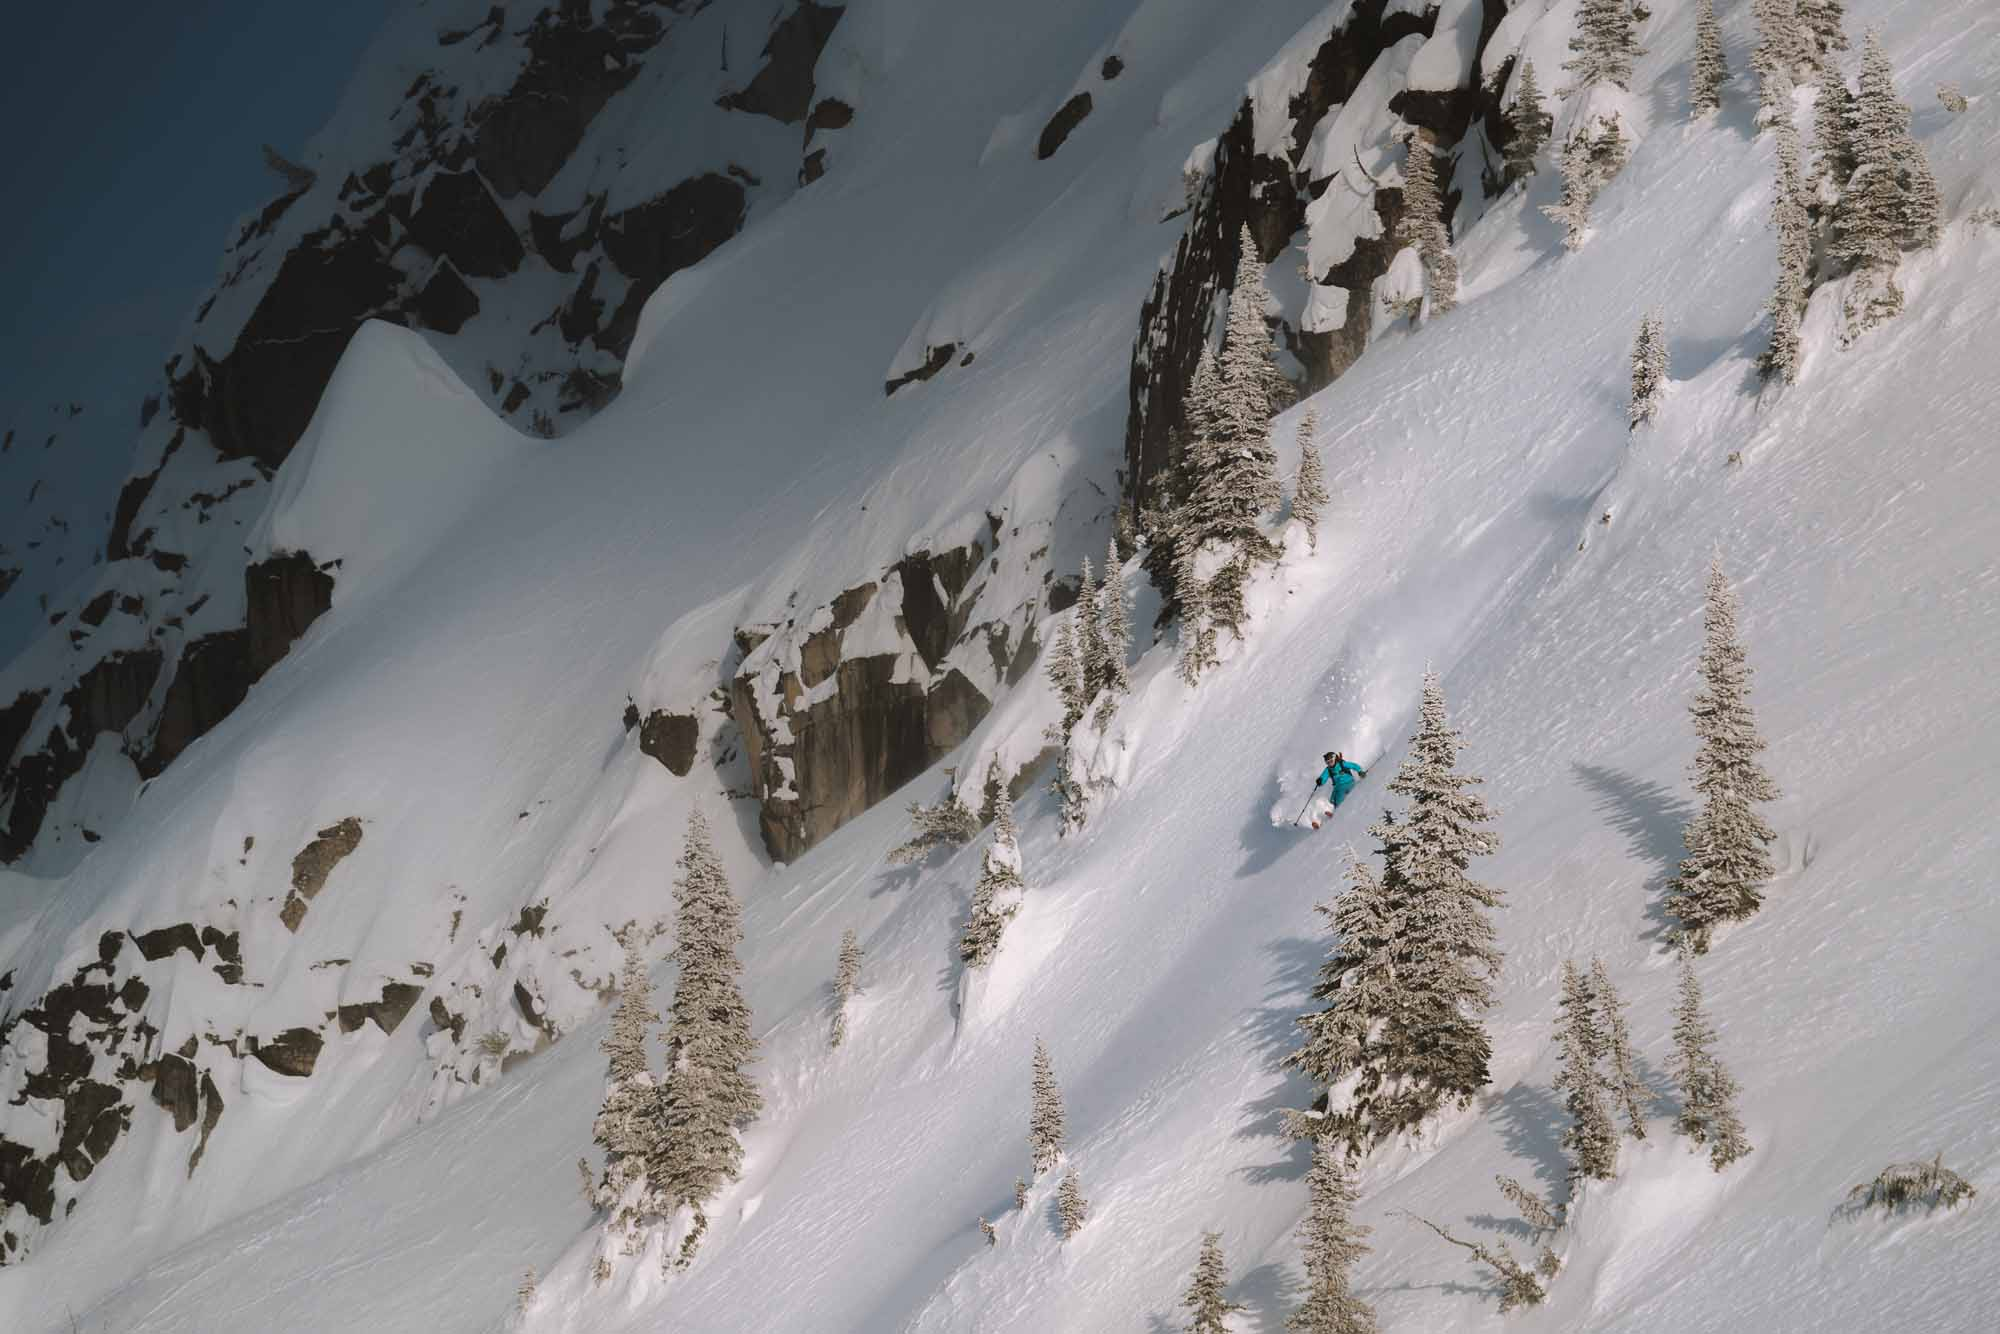 The-Epitome-of-Untouched-Heli-Camping-in-the-Alpine-photo-by-Michael-Overbeck-skier